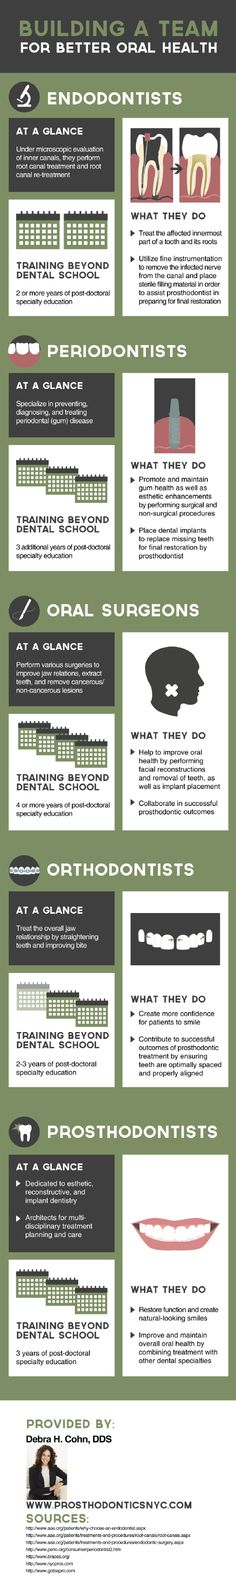 After dental school, oral surgeons must complete 4 or more years of post-doctoral specialty education. You can find more facts about different oral health professionals, including oral surgeons, by reading through this NYC restorative dentistry infographic.